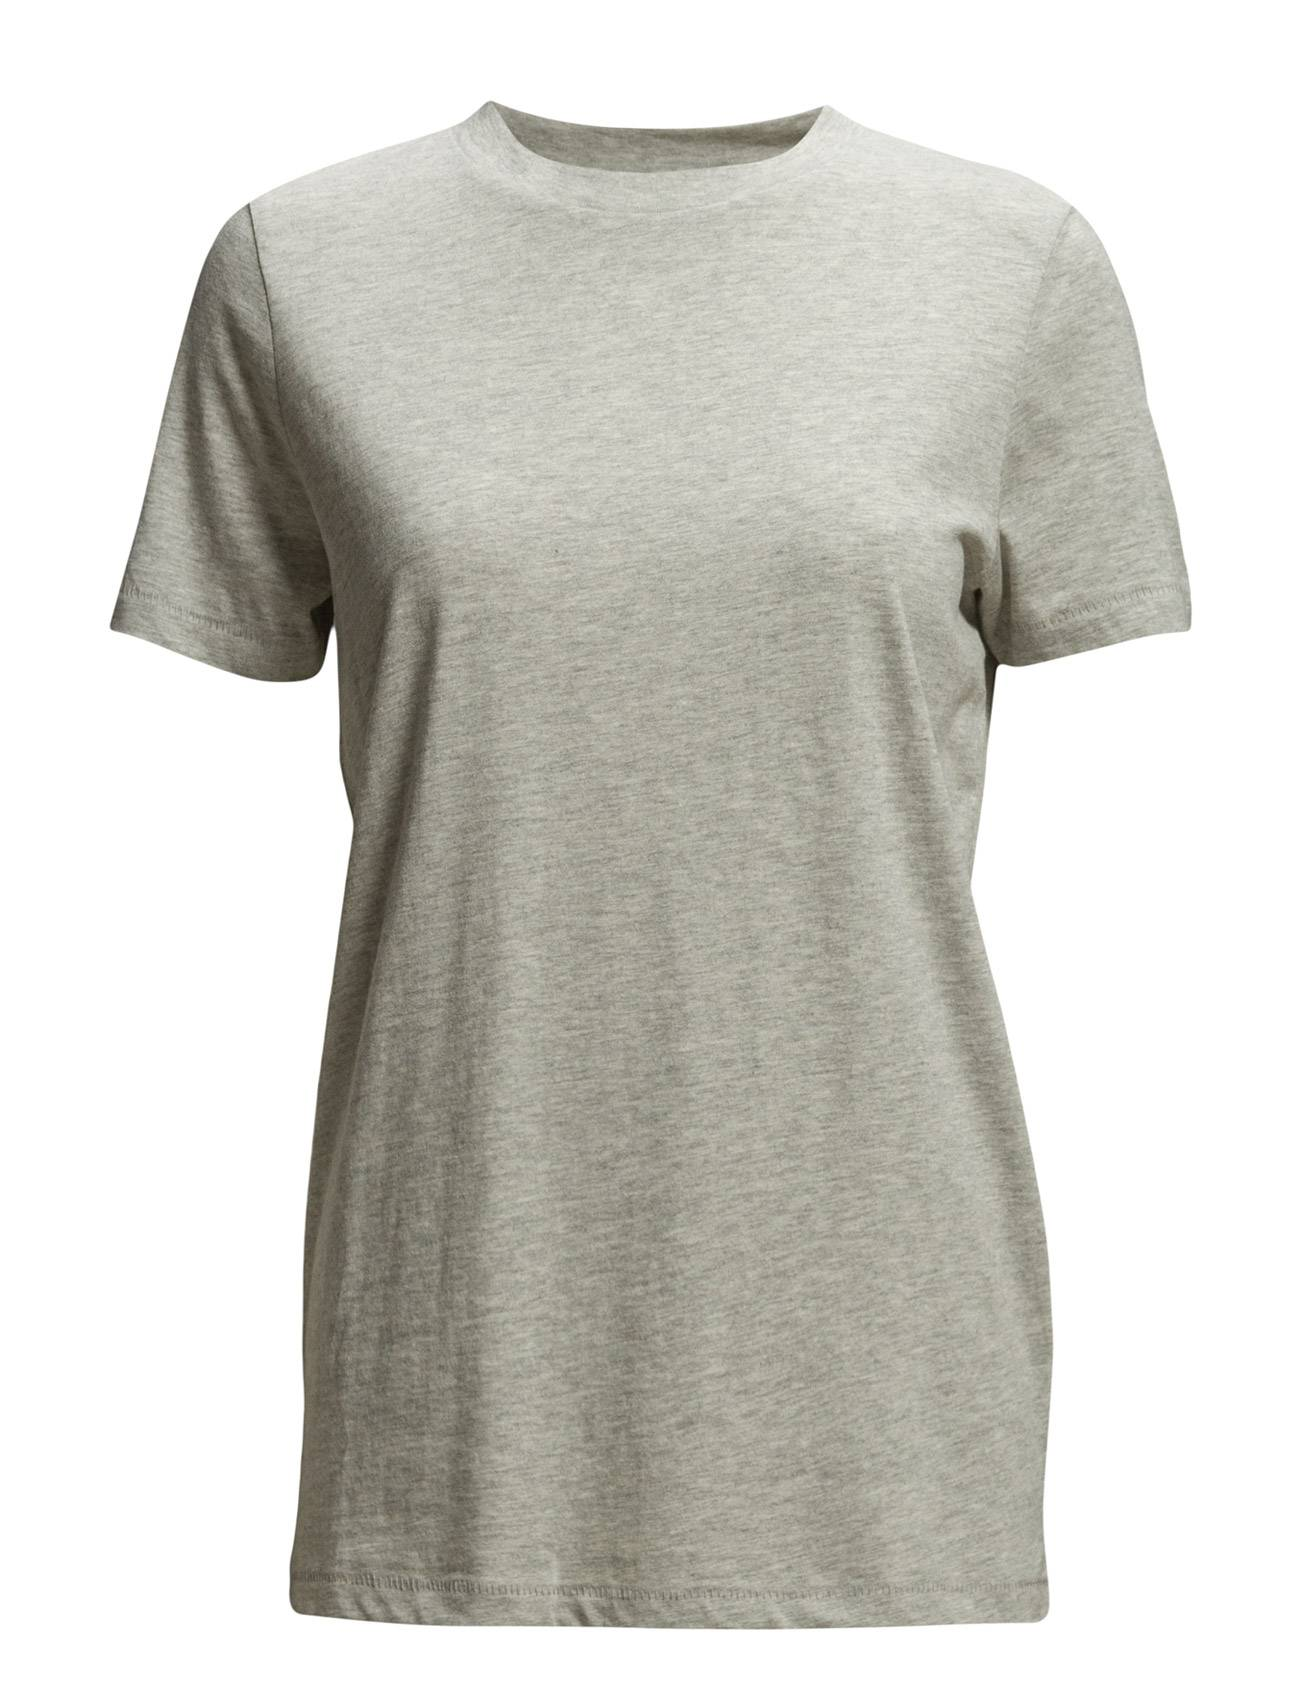 Selected Femme Sfmy Perfect Ss Tee - Box Cut Noos